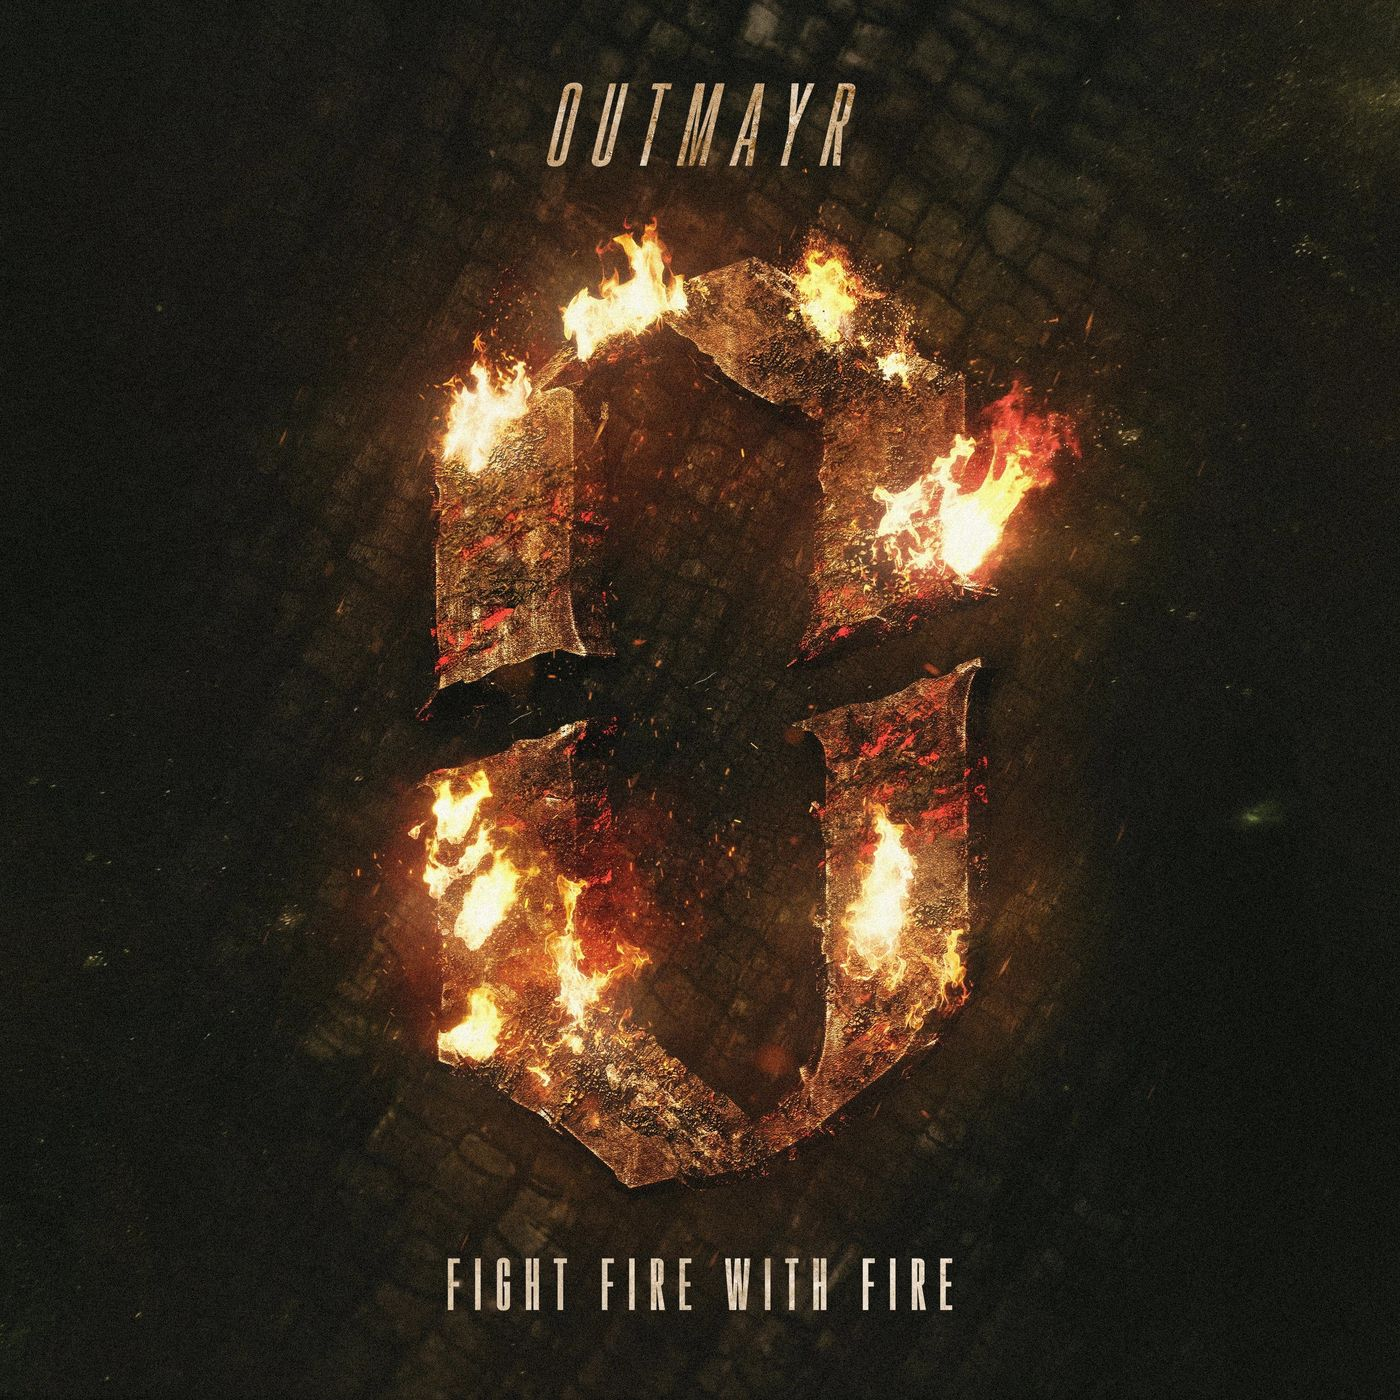 Outmayr - Fight Fire with Fire [single] (2021)